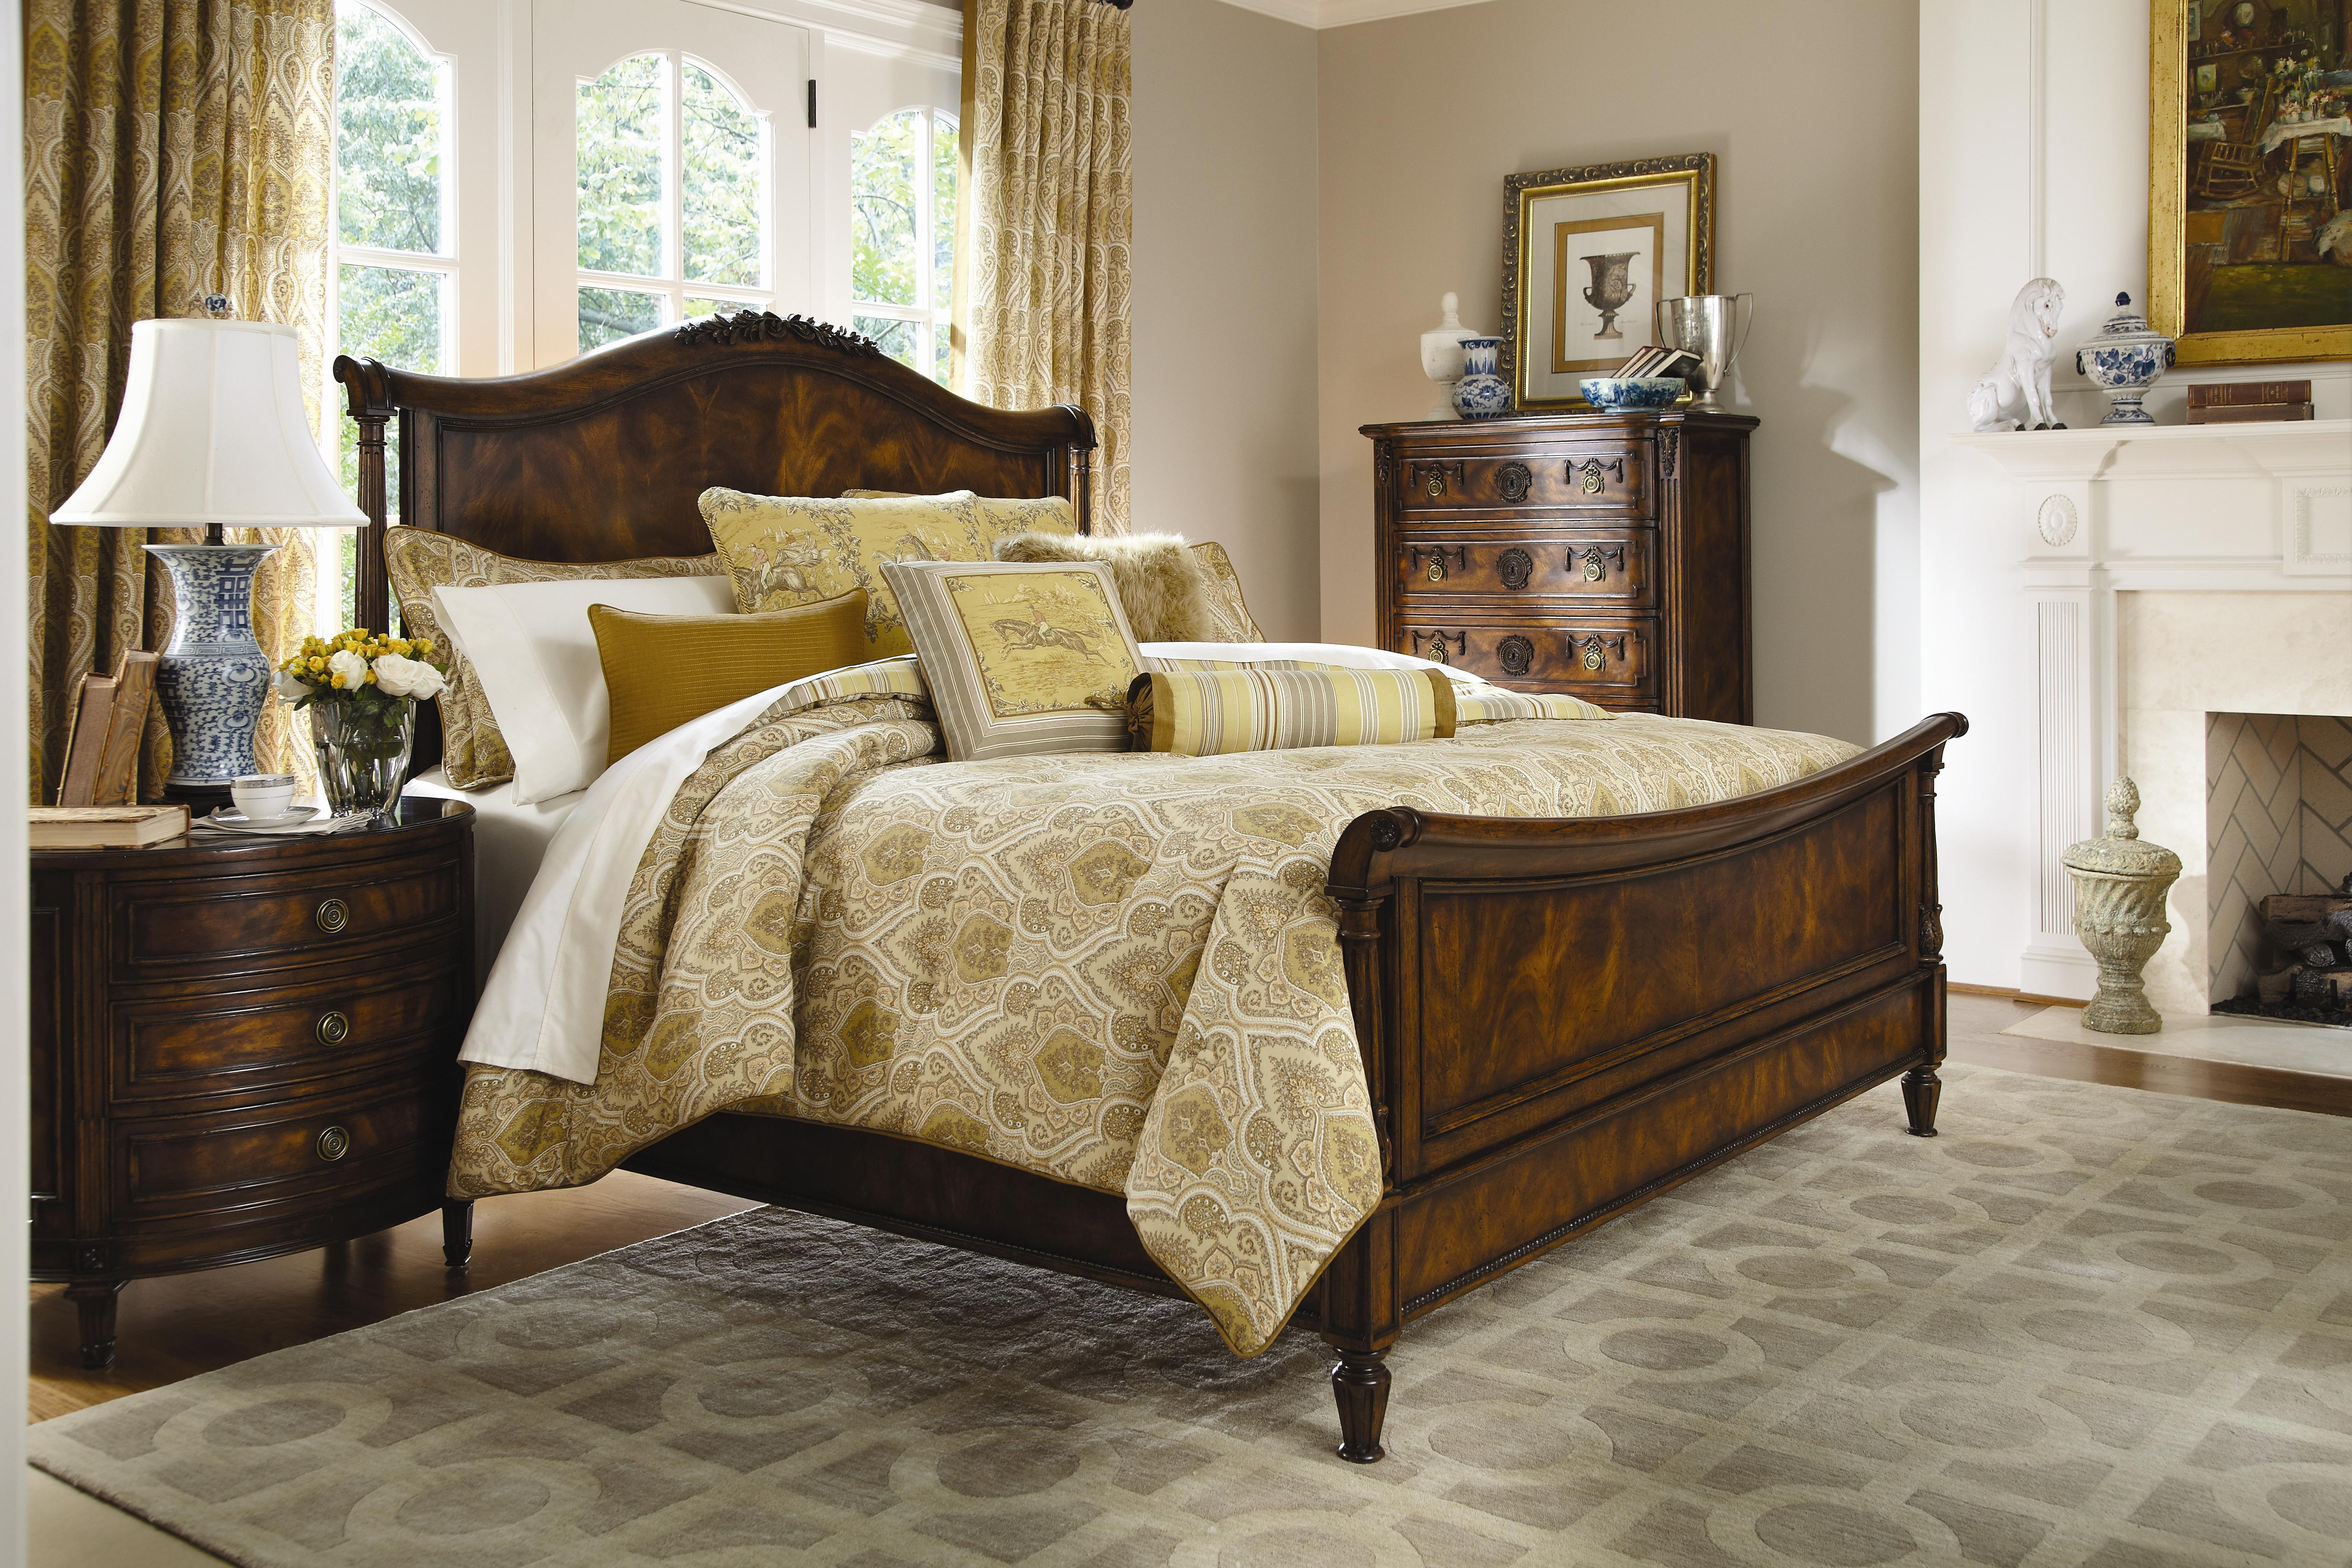 classic equestrian-themed bedding | biltmore